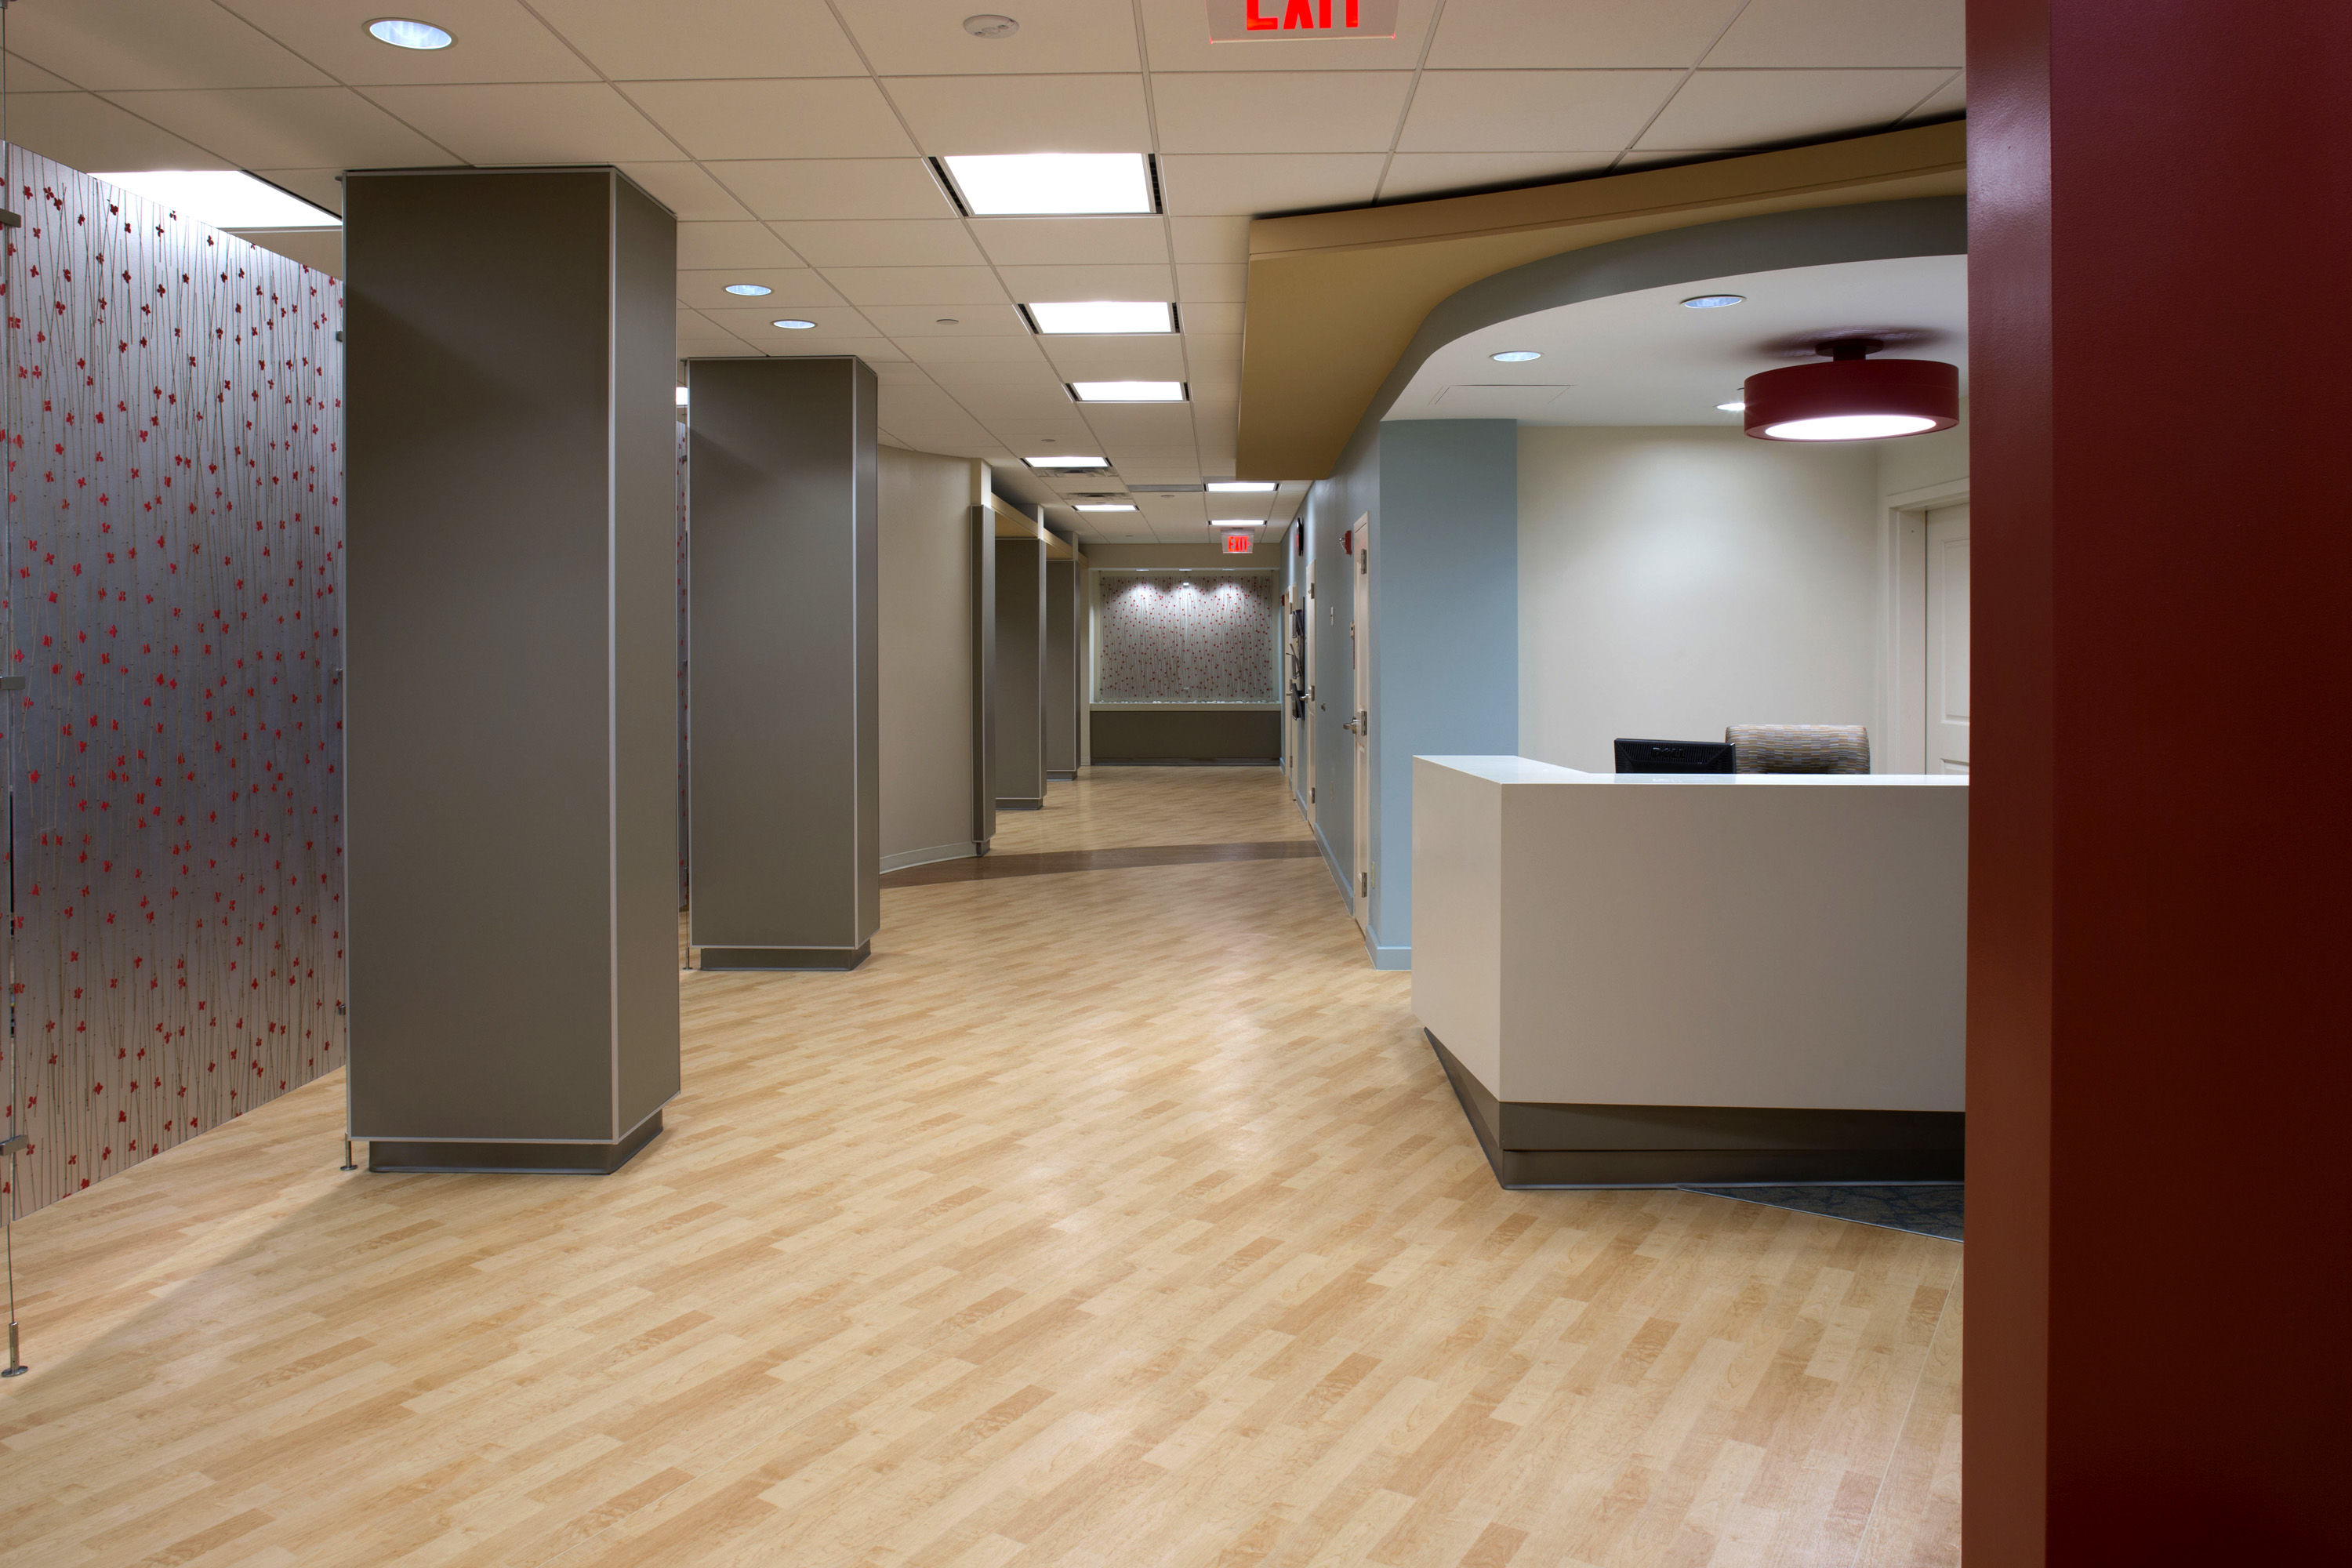 Wasserman Residence Physical Therapy/Rehabilitation Center Senior Living Healthcare Design Entry